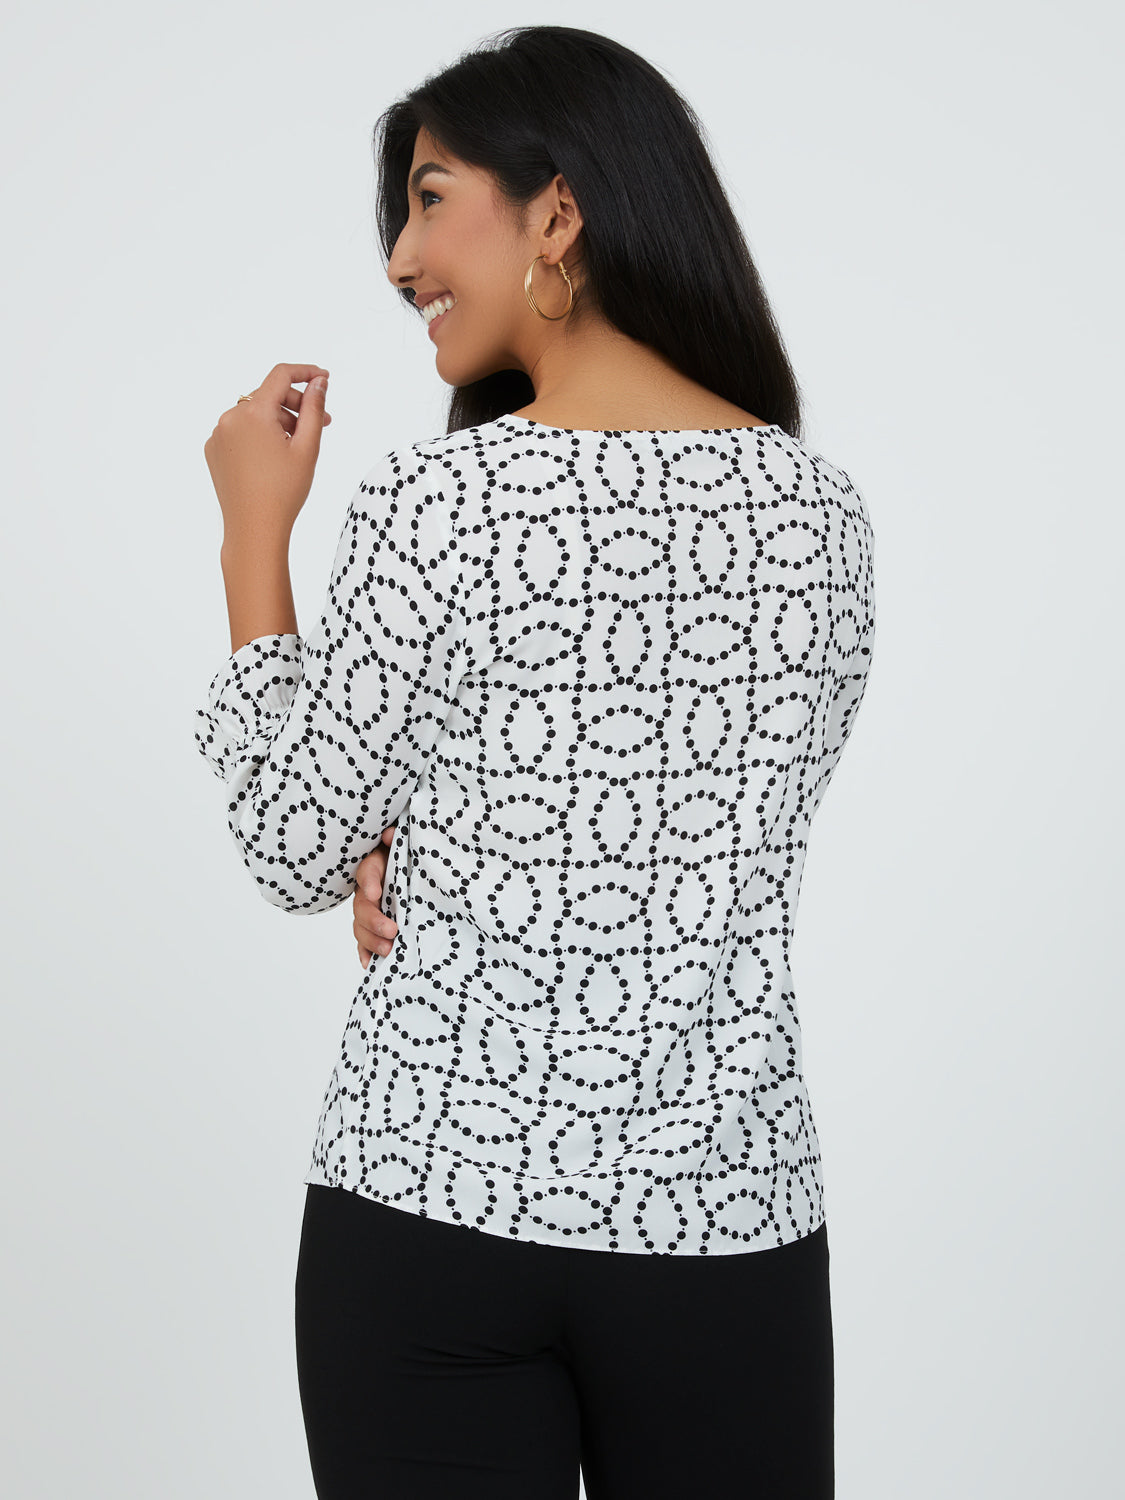 ¾ Sleeve Printed Chiffon Top